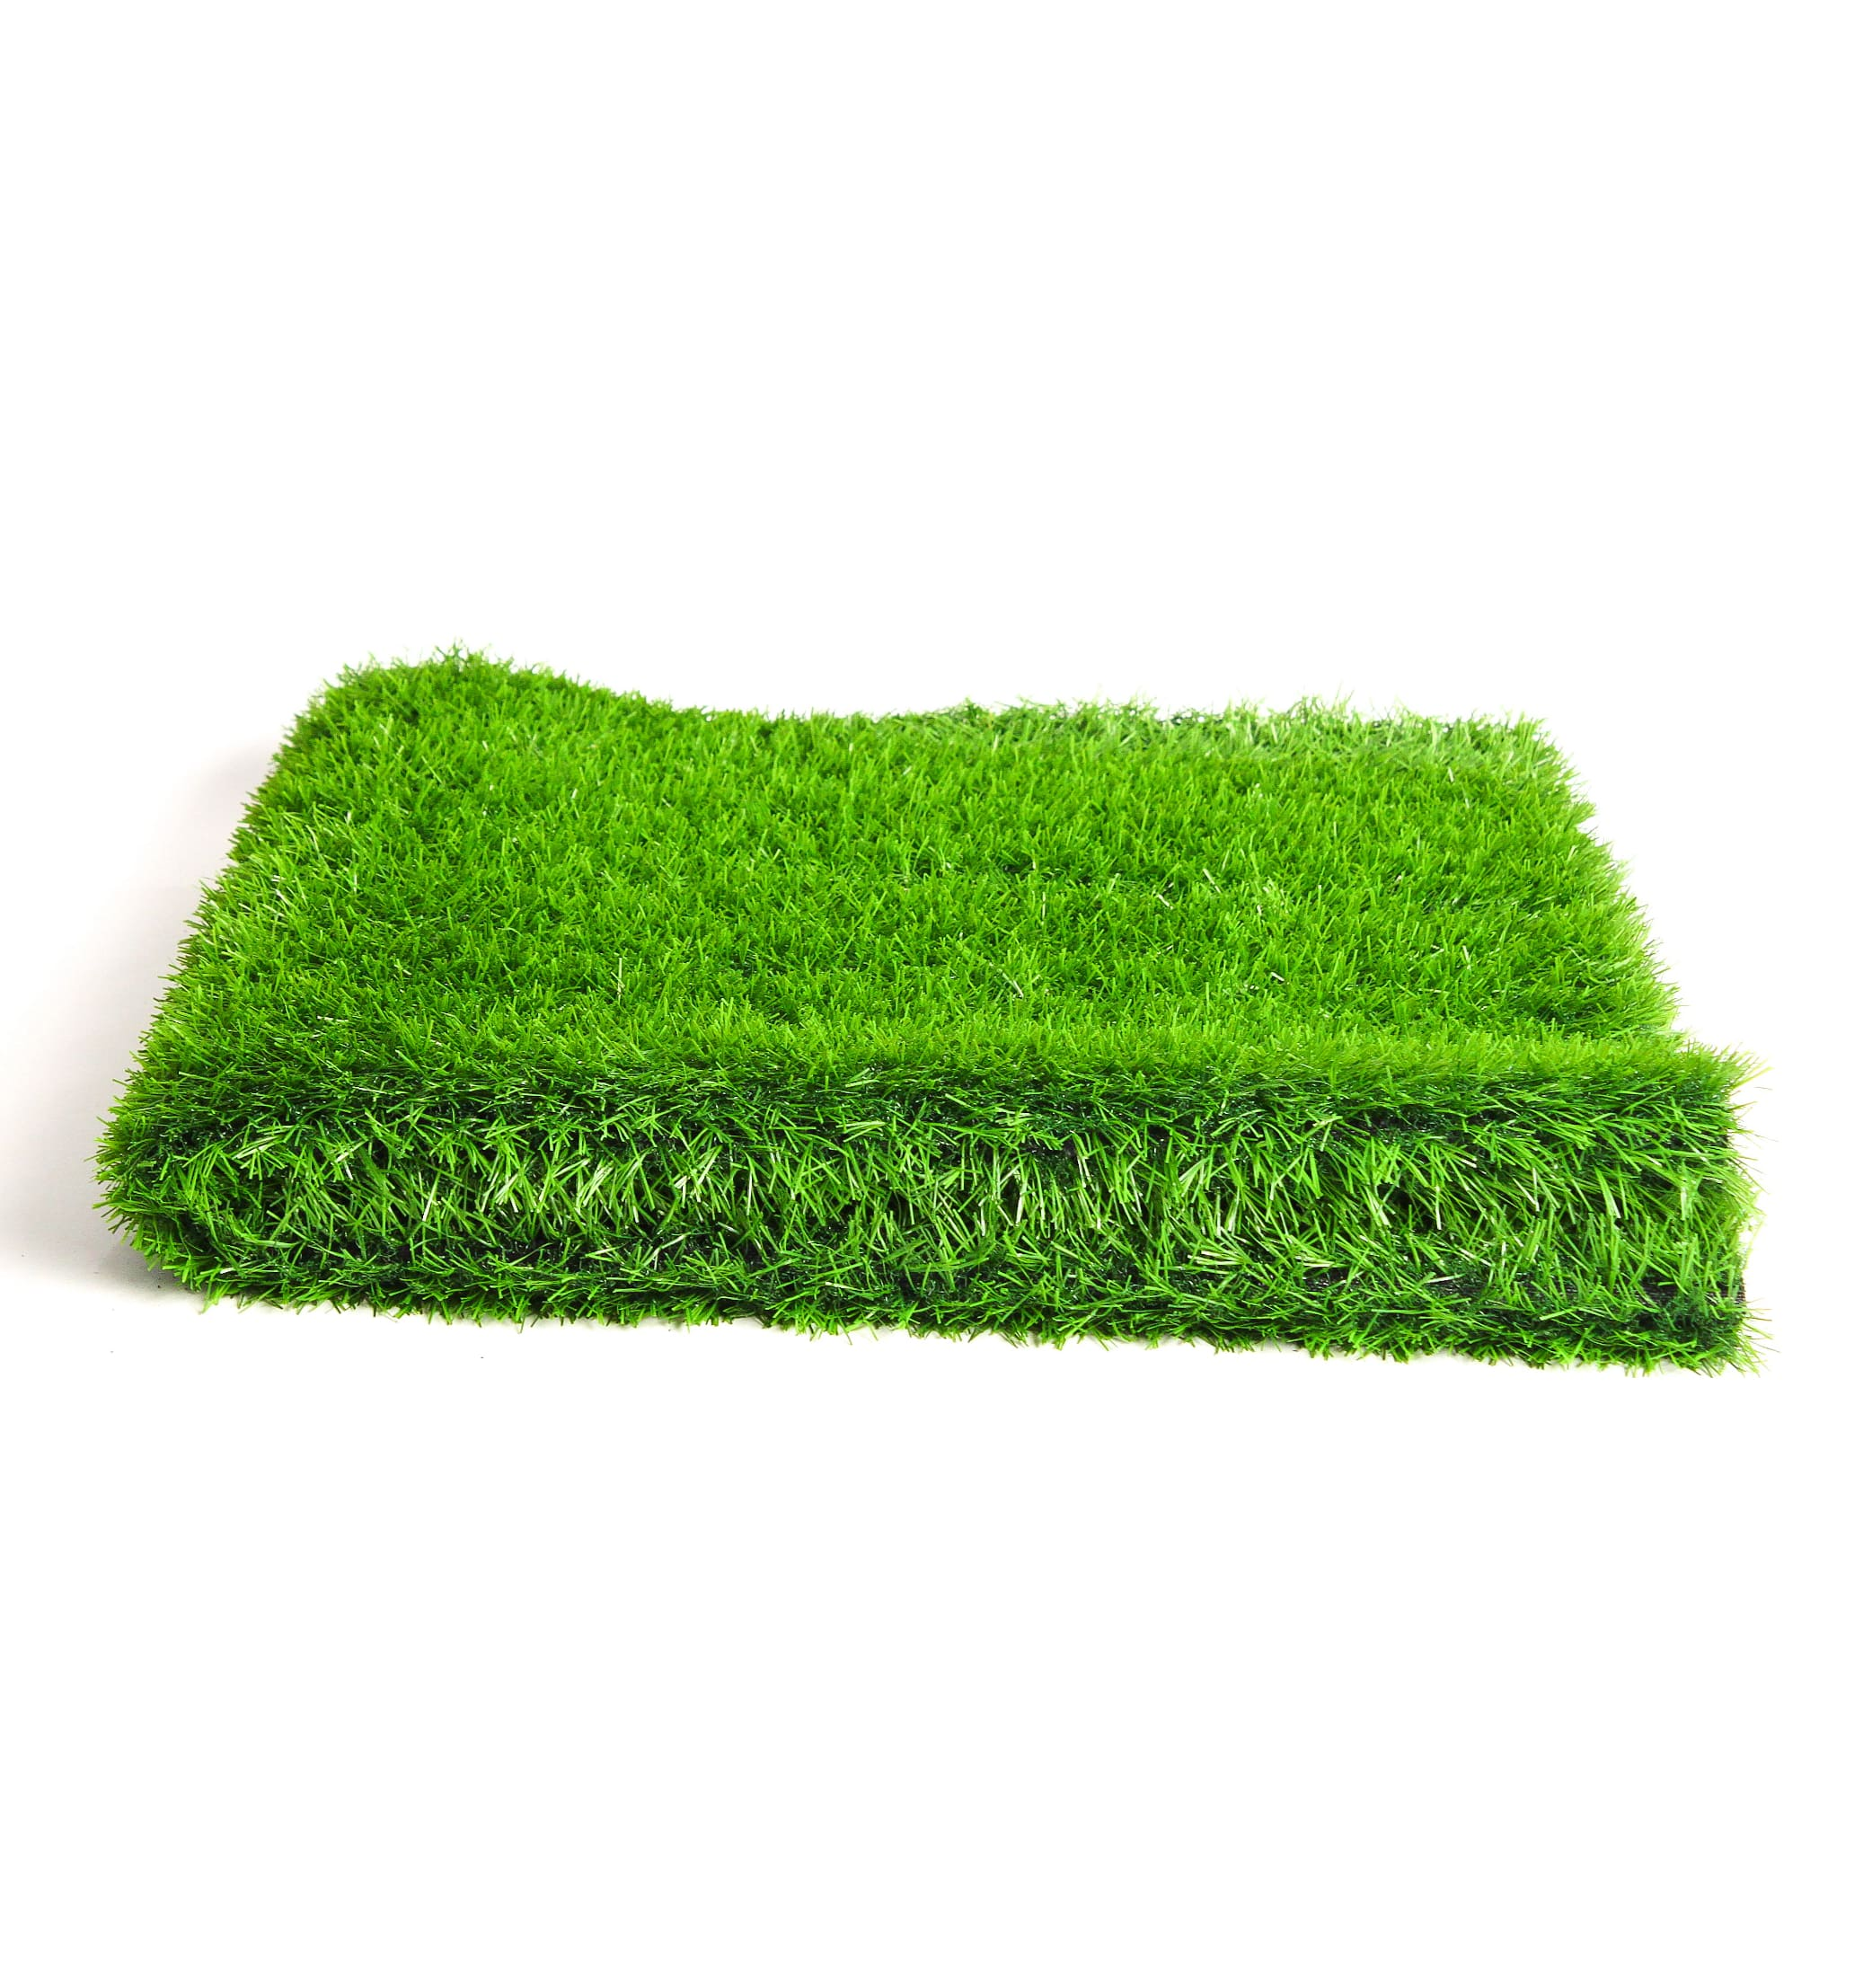 Artificial Turf For Garden And Garden, Landscape Design, Pile 25 ± 1mm In Rolls Wide 2 M. And Long 25 M., Item No. Naturep-2513-2